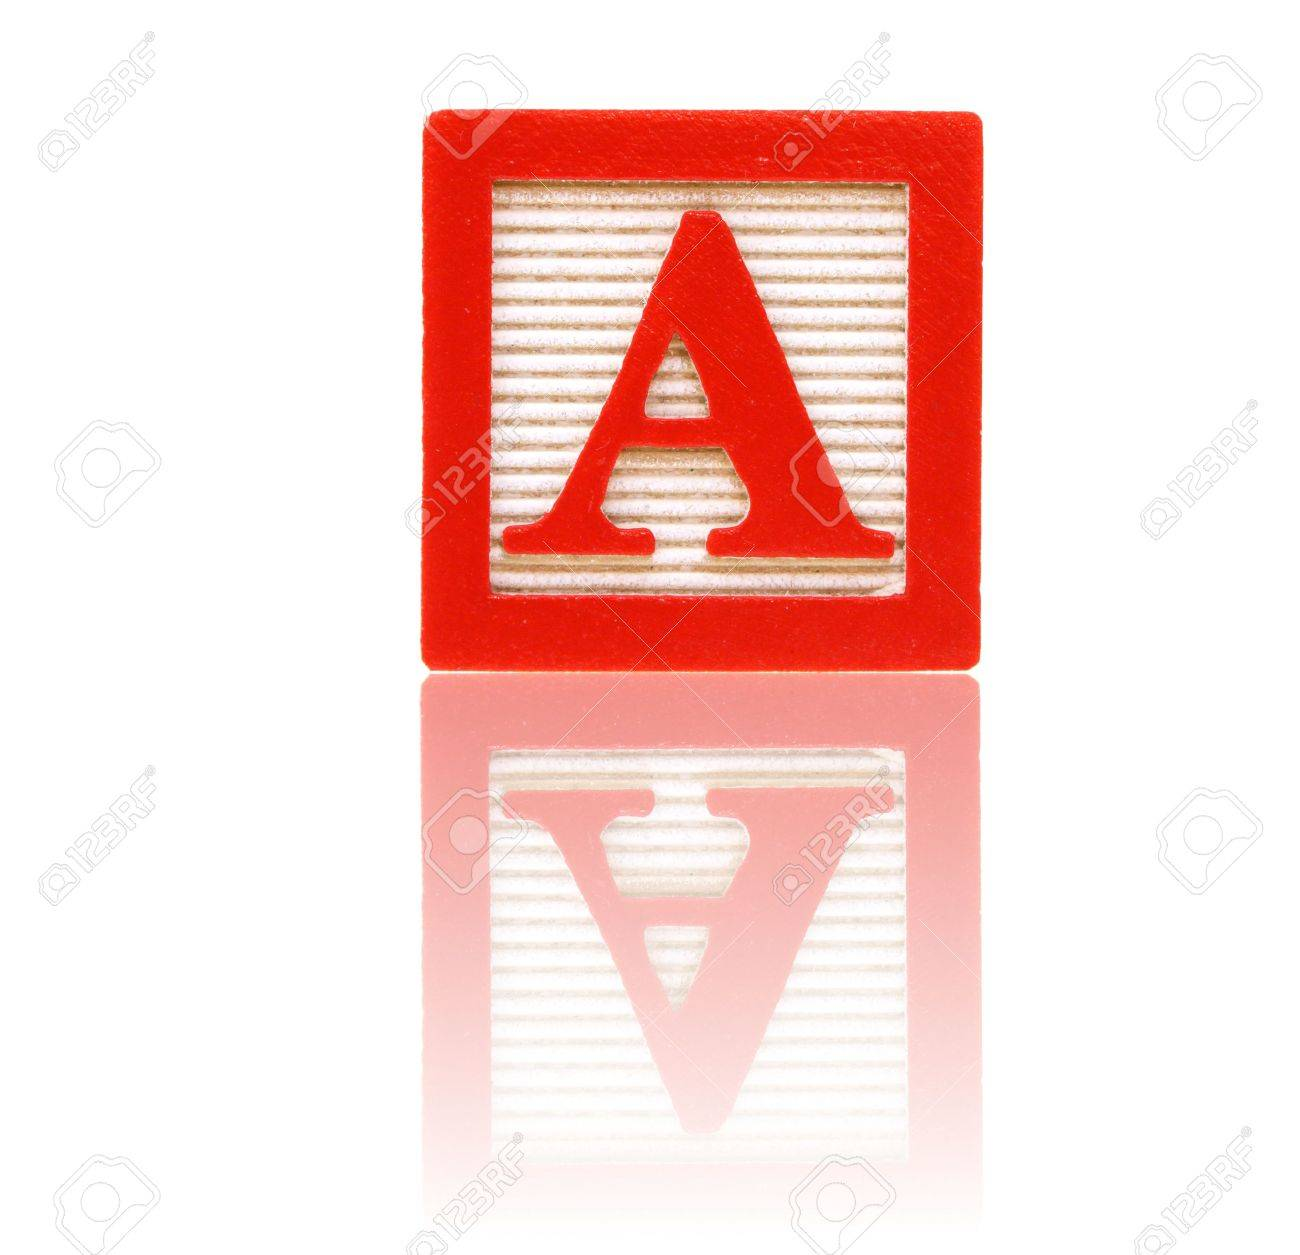 letter a in an alphabet wood block on a reflective surface Stock Photo - 3094471